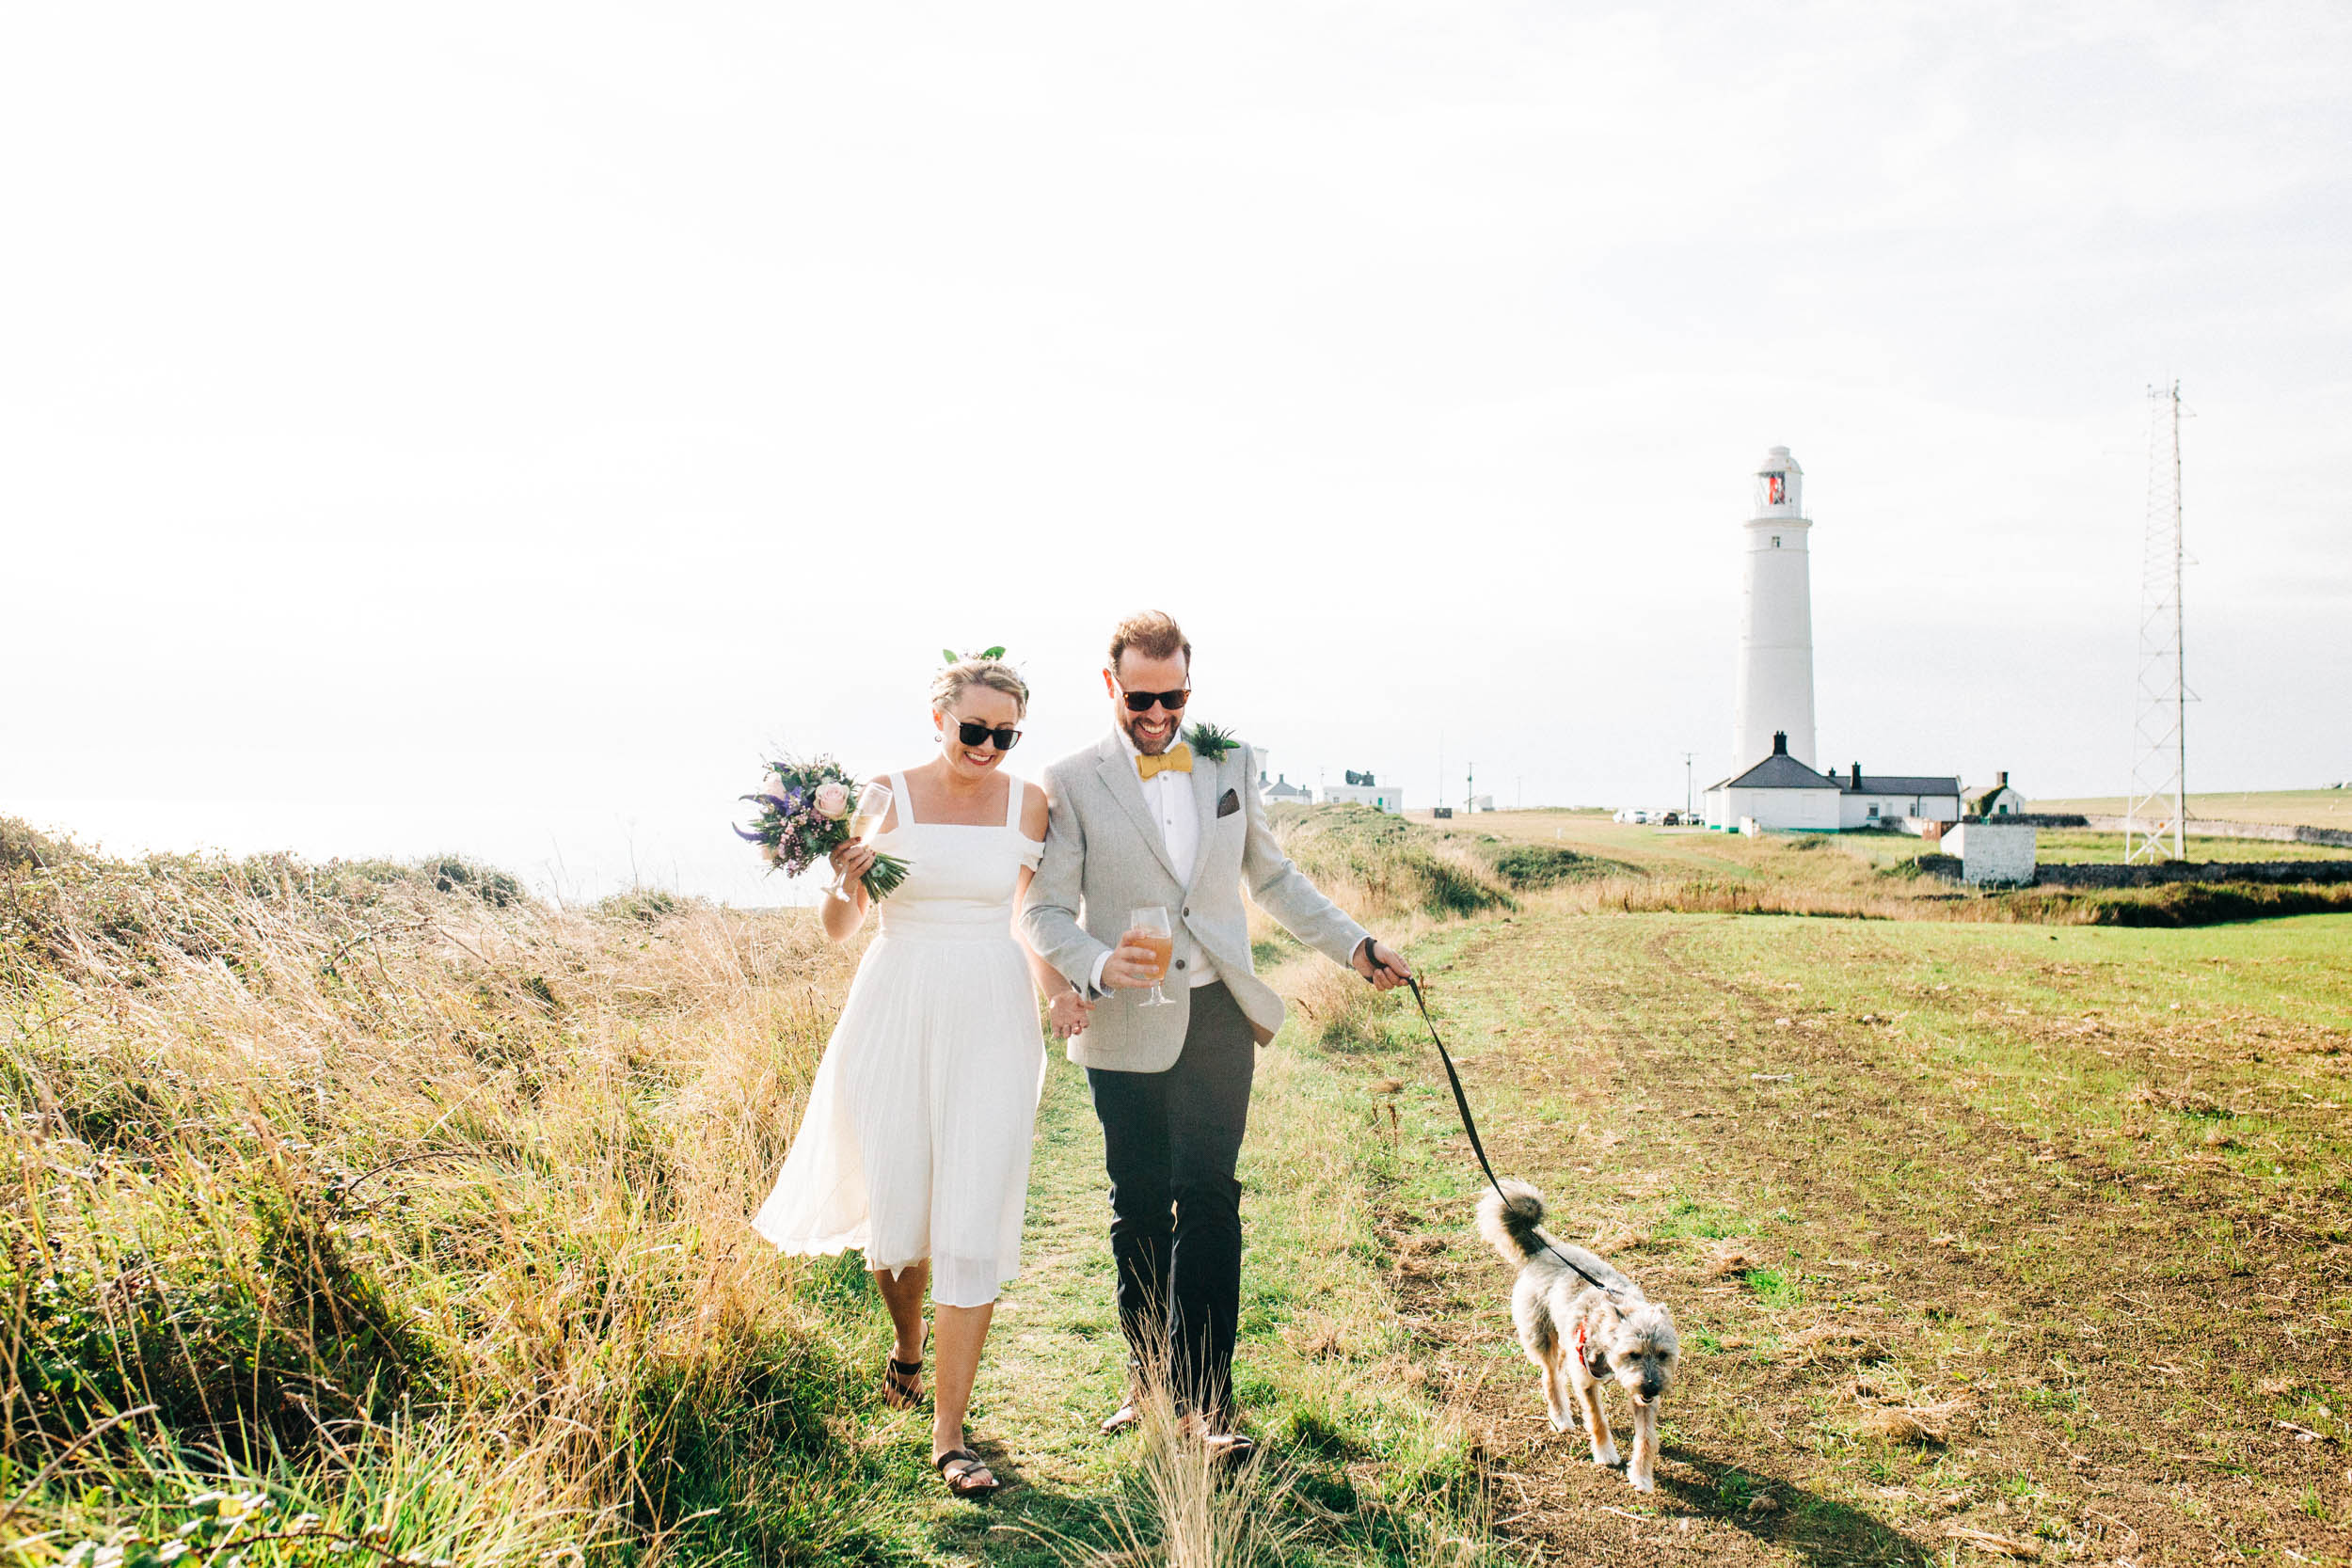 Alex_Sedgmond_Photography-MonkNashLighthouse-WeddingPhotography-Penny&Mike-200.jpg